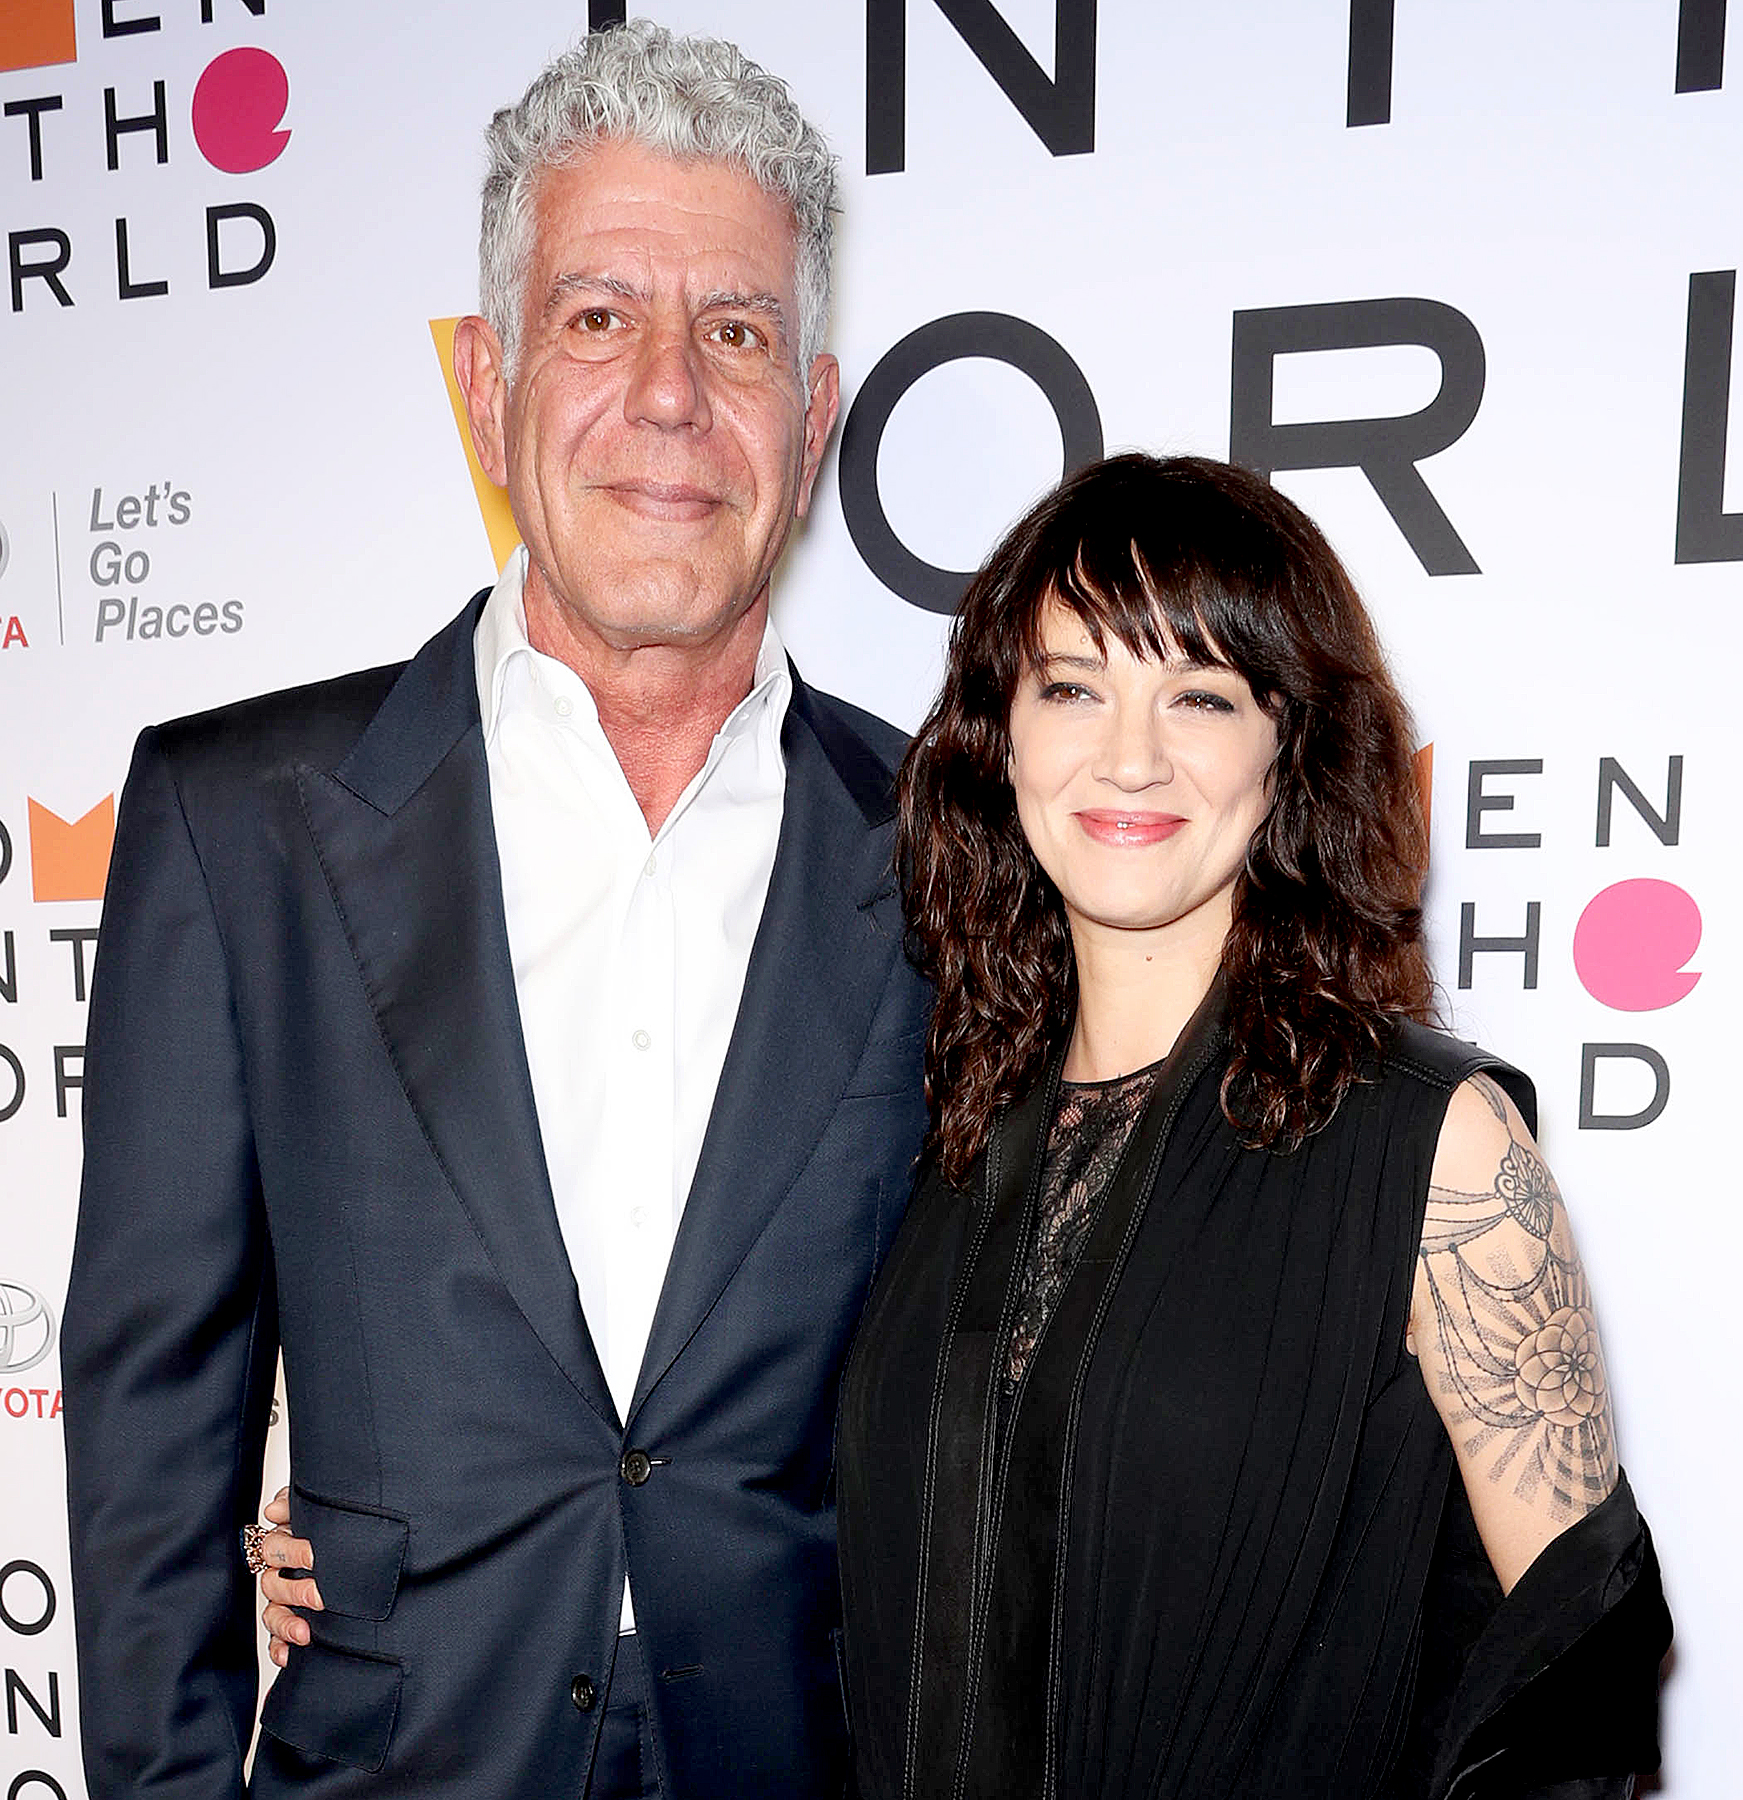 Anthony-Bourdain,-Asia-Argento - Anthony Bourdain and Asia Argento attend The 2018 Women in the World Summit, at David H. Koch Theater at Lincoln Center.